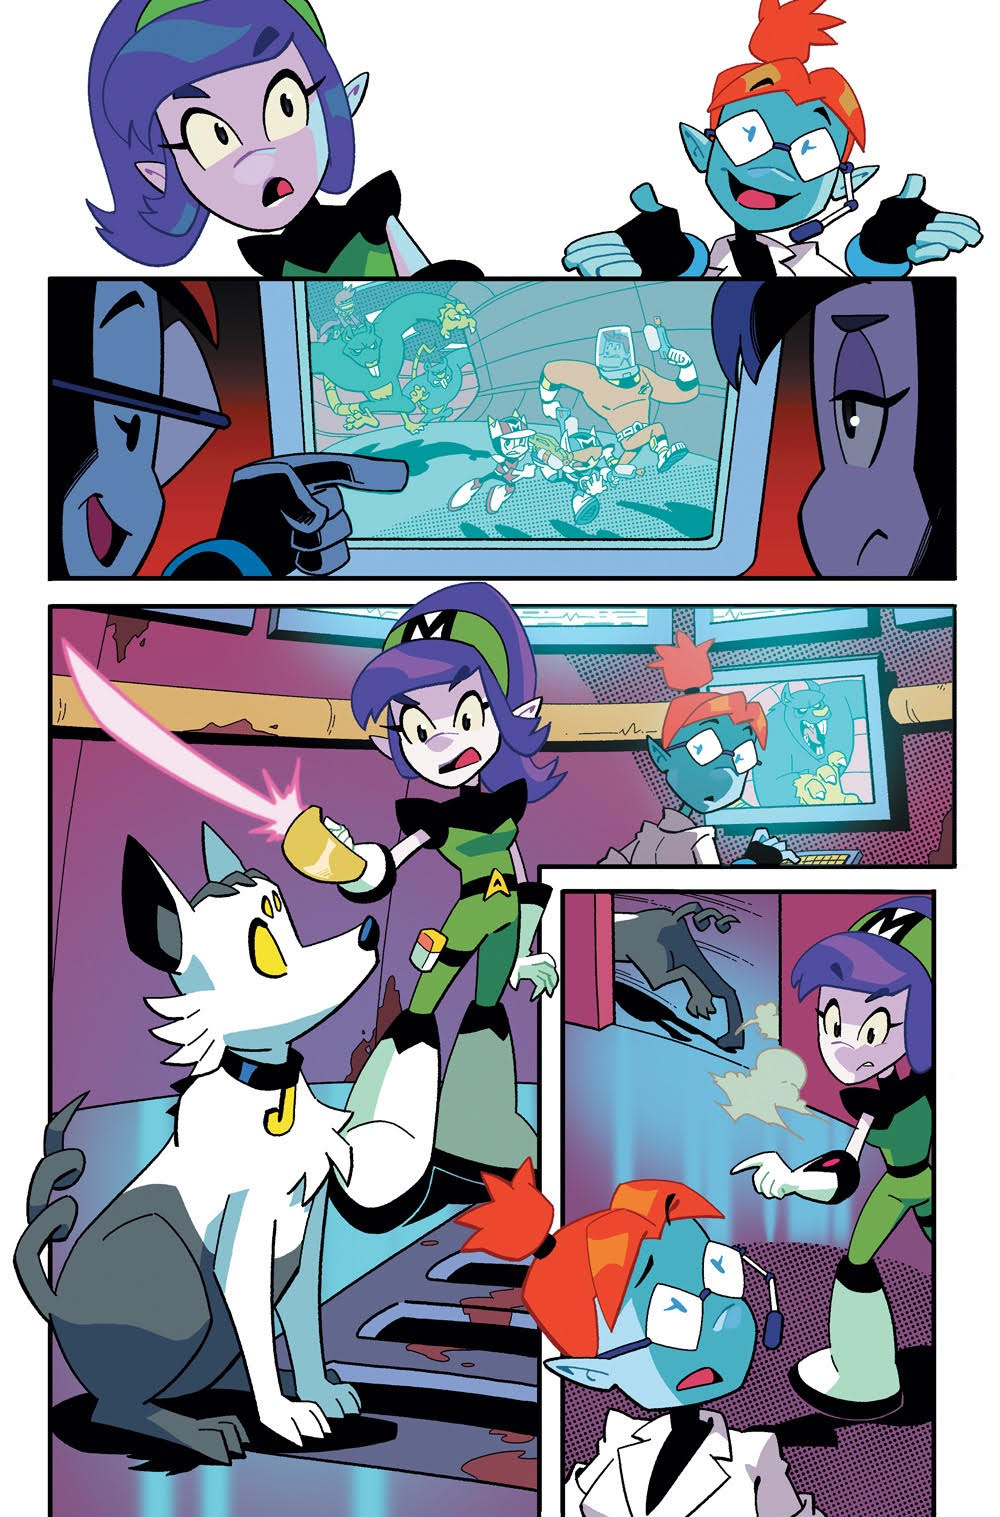 Cosmo the Mighty Martian: Page 14, Astra telling Jojo to go help the awesome crew.